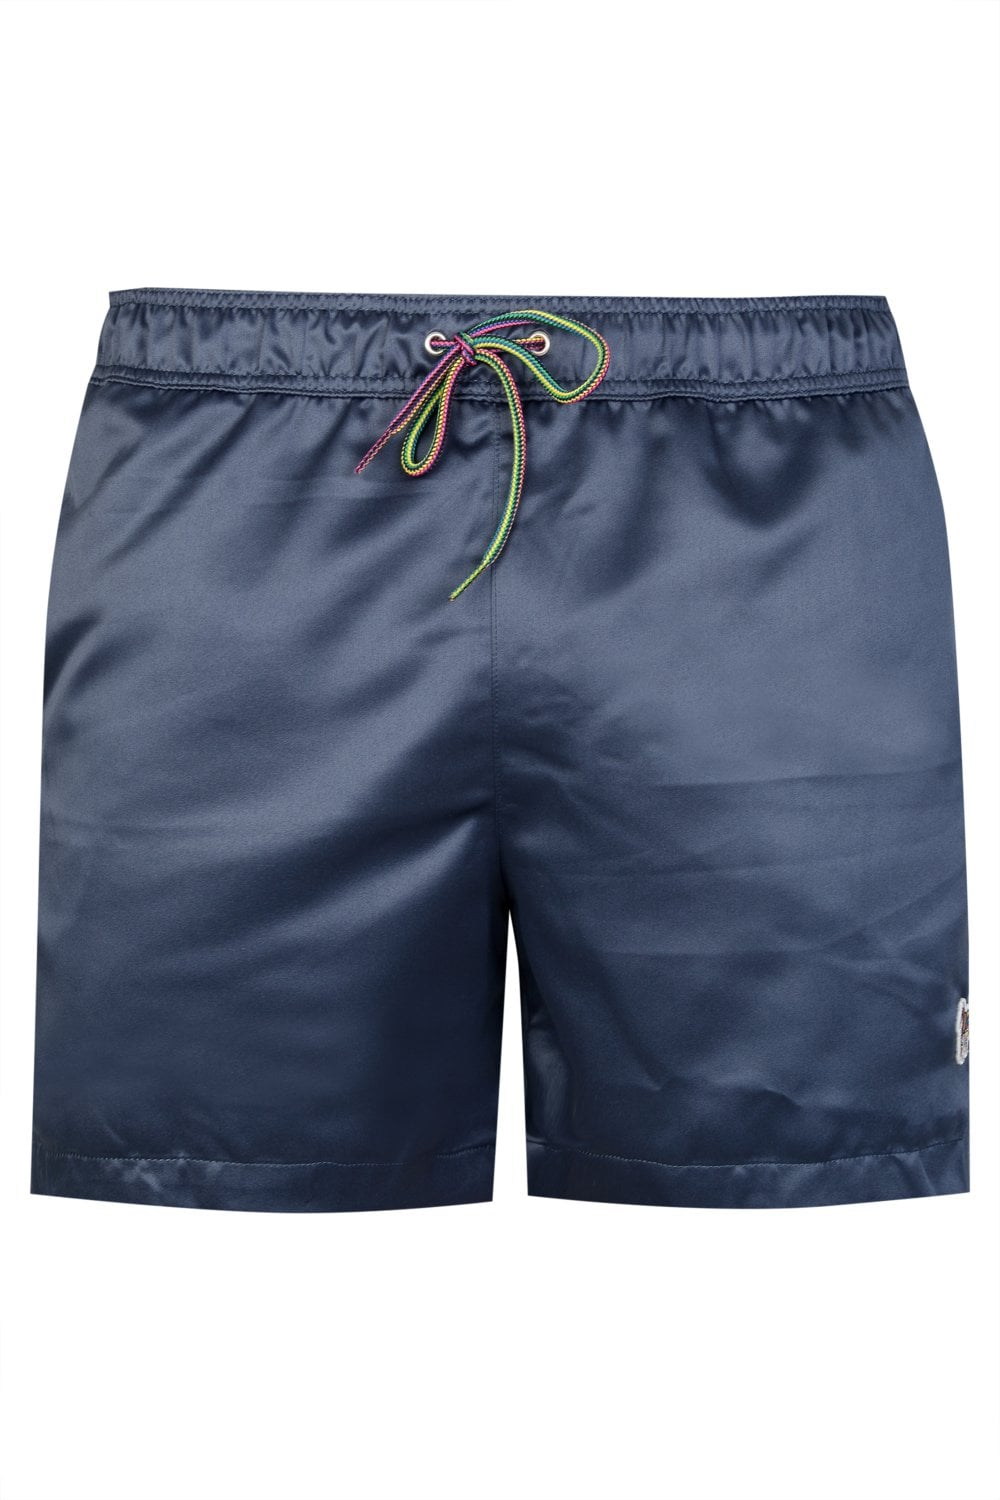 f85919c340 PAUL SMITH Paul Smith Logo Swim Shorts - Clothing from Circle Fashion UK